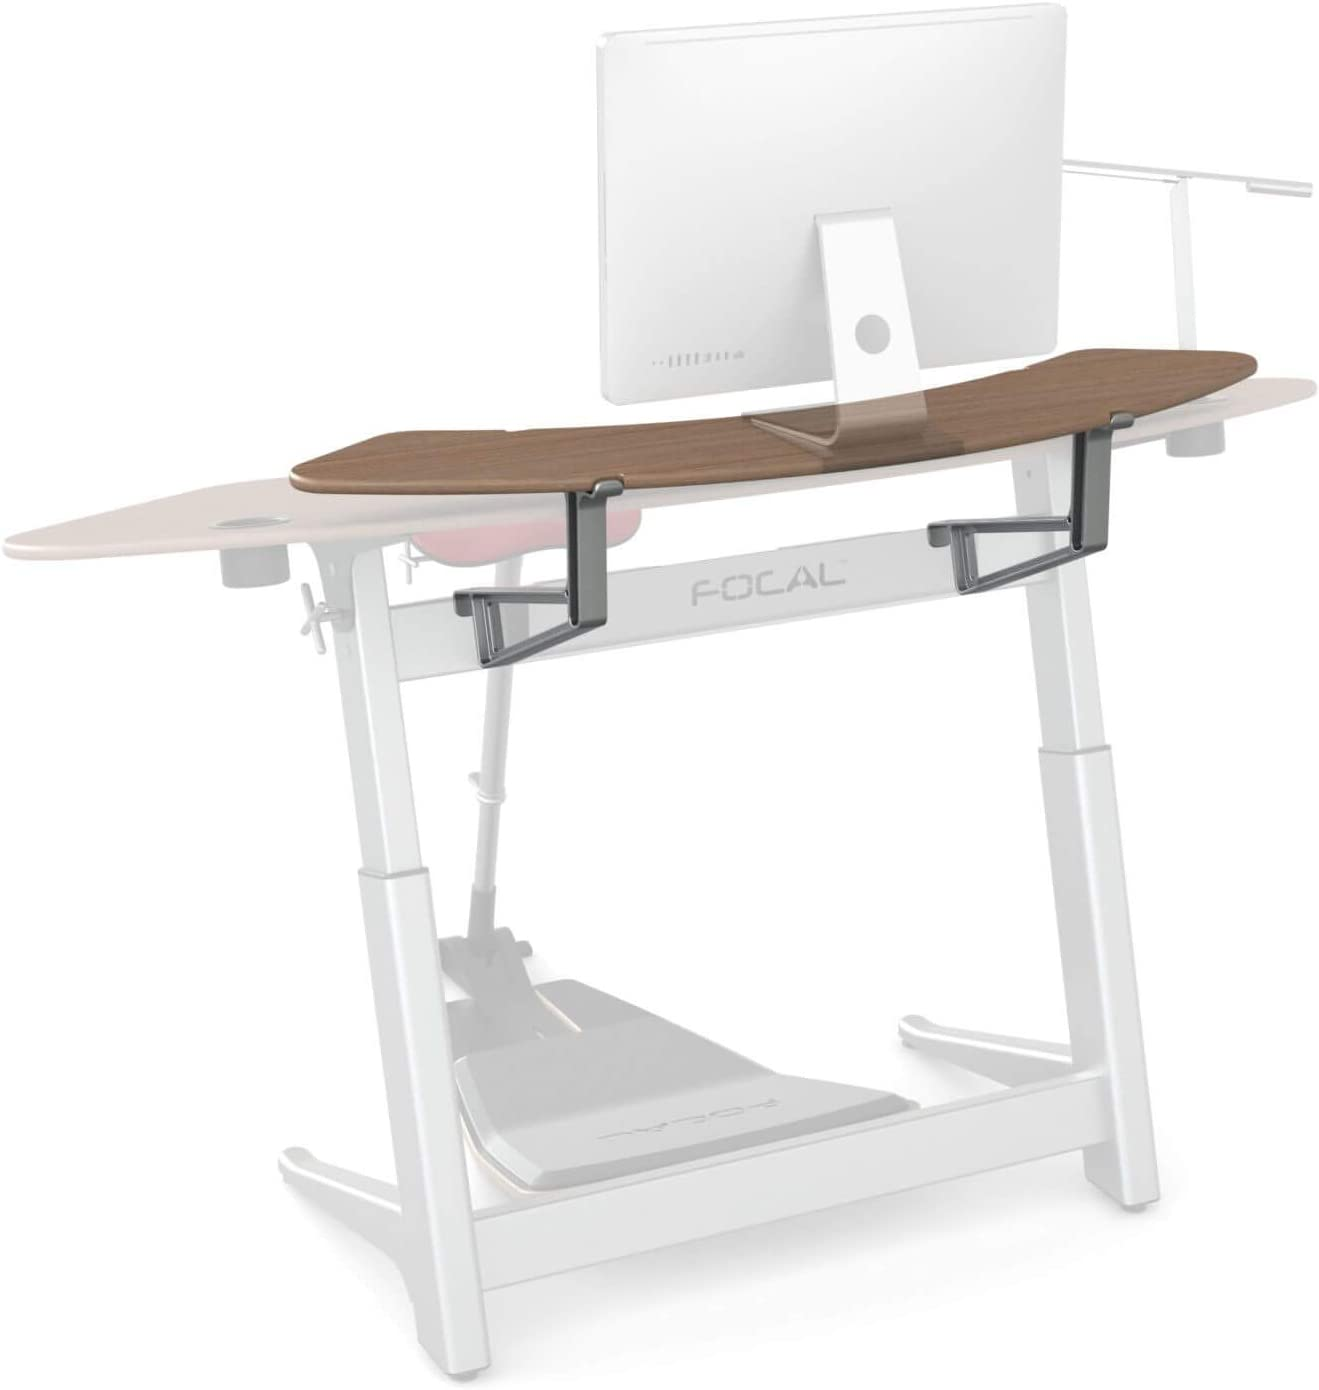 Active Collection Locus 5/6 Shelf for use with Locus 5 and Locus 6 Desks (sold separately), Black Walnut